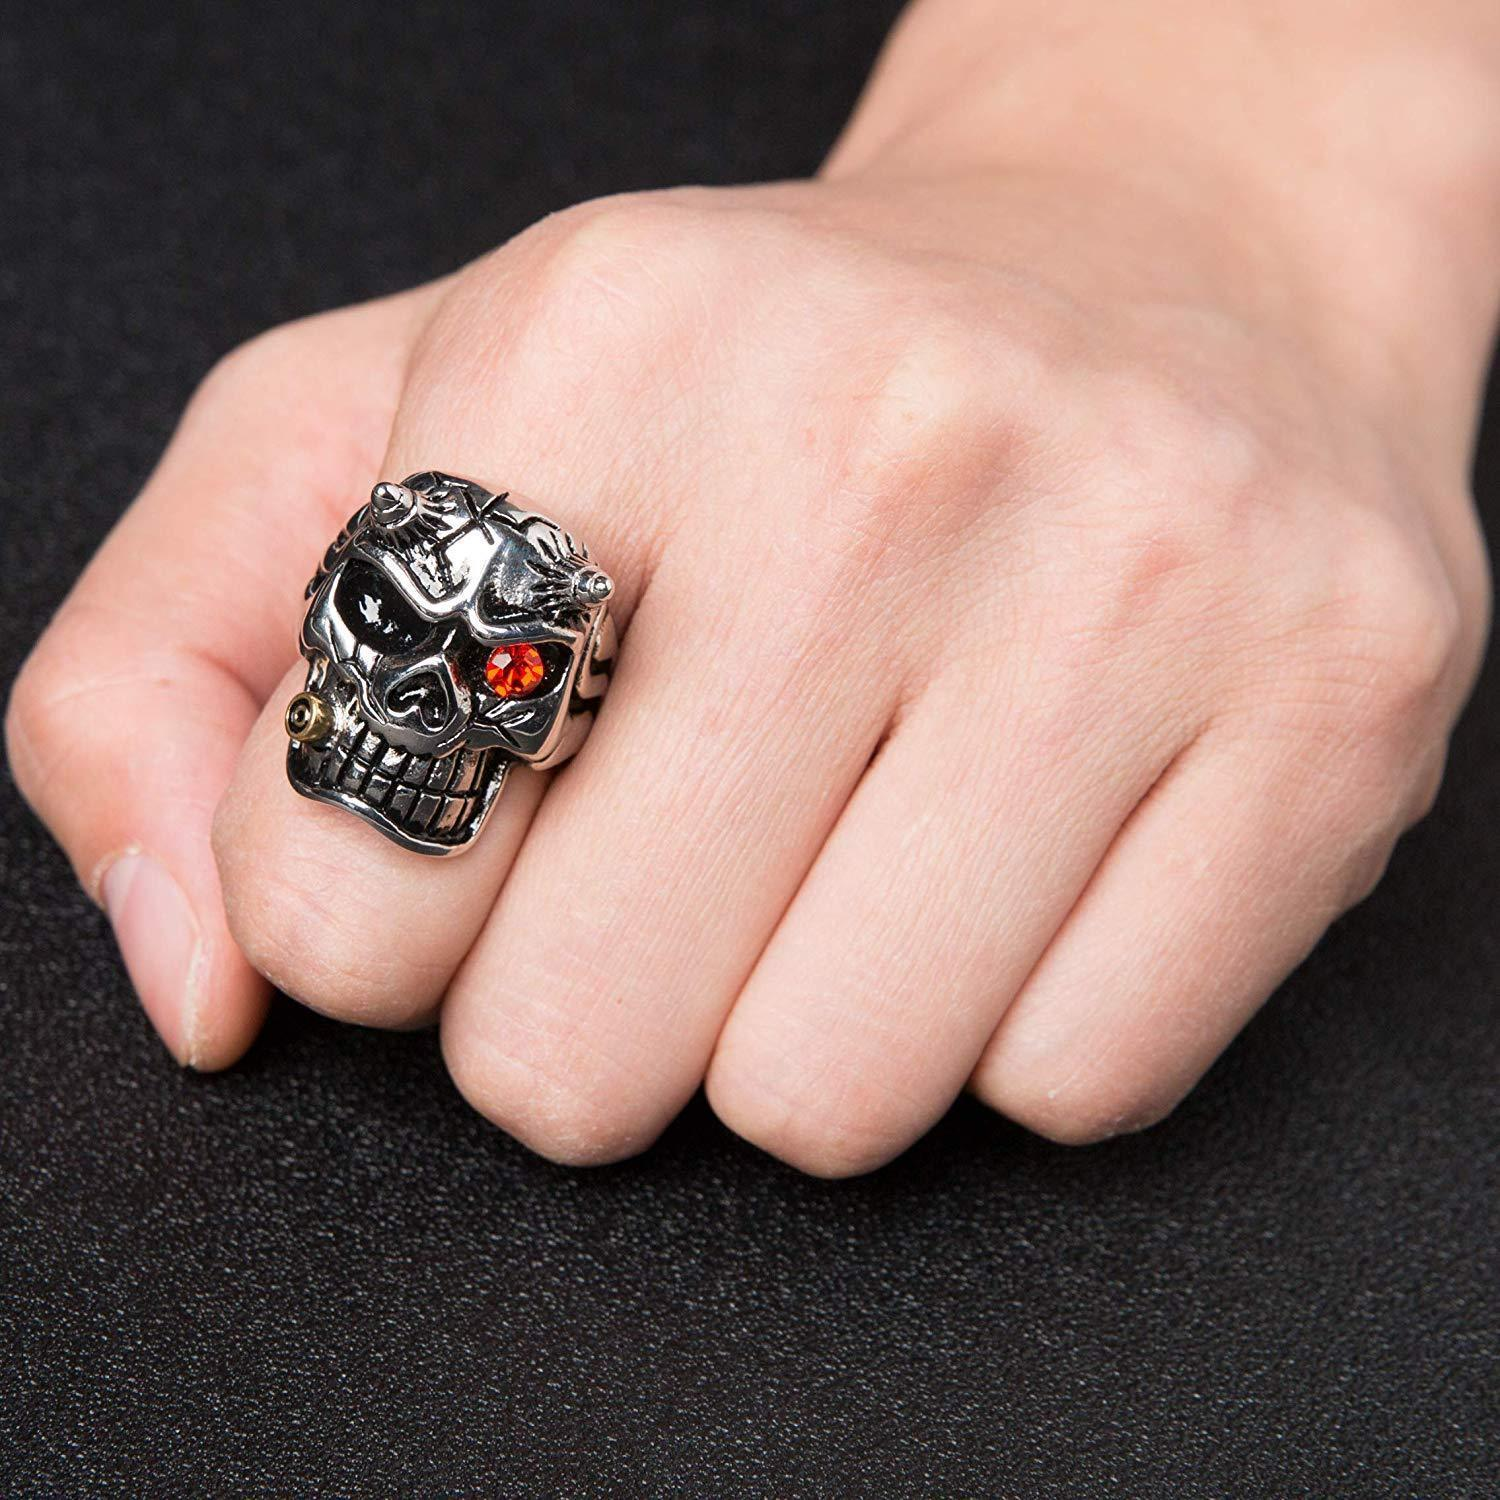 HZMAN Men's Red Cz Iced Gothic Skull Stainless Steel Ring Biker Band